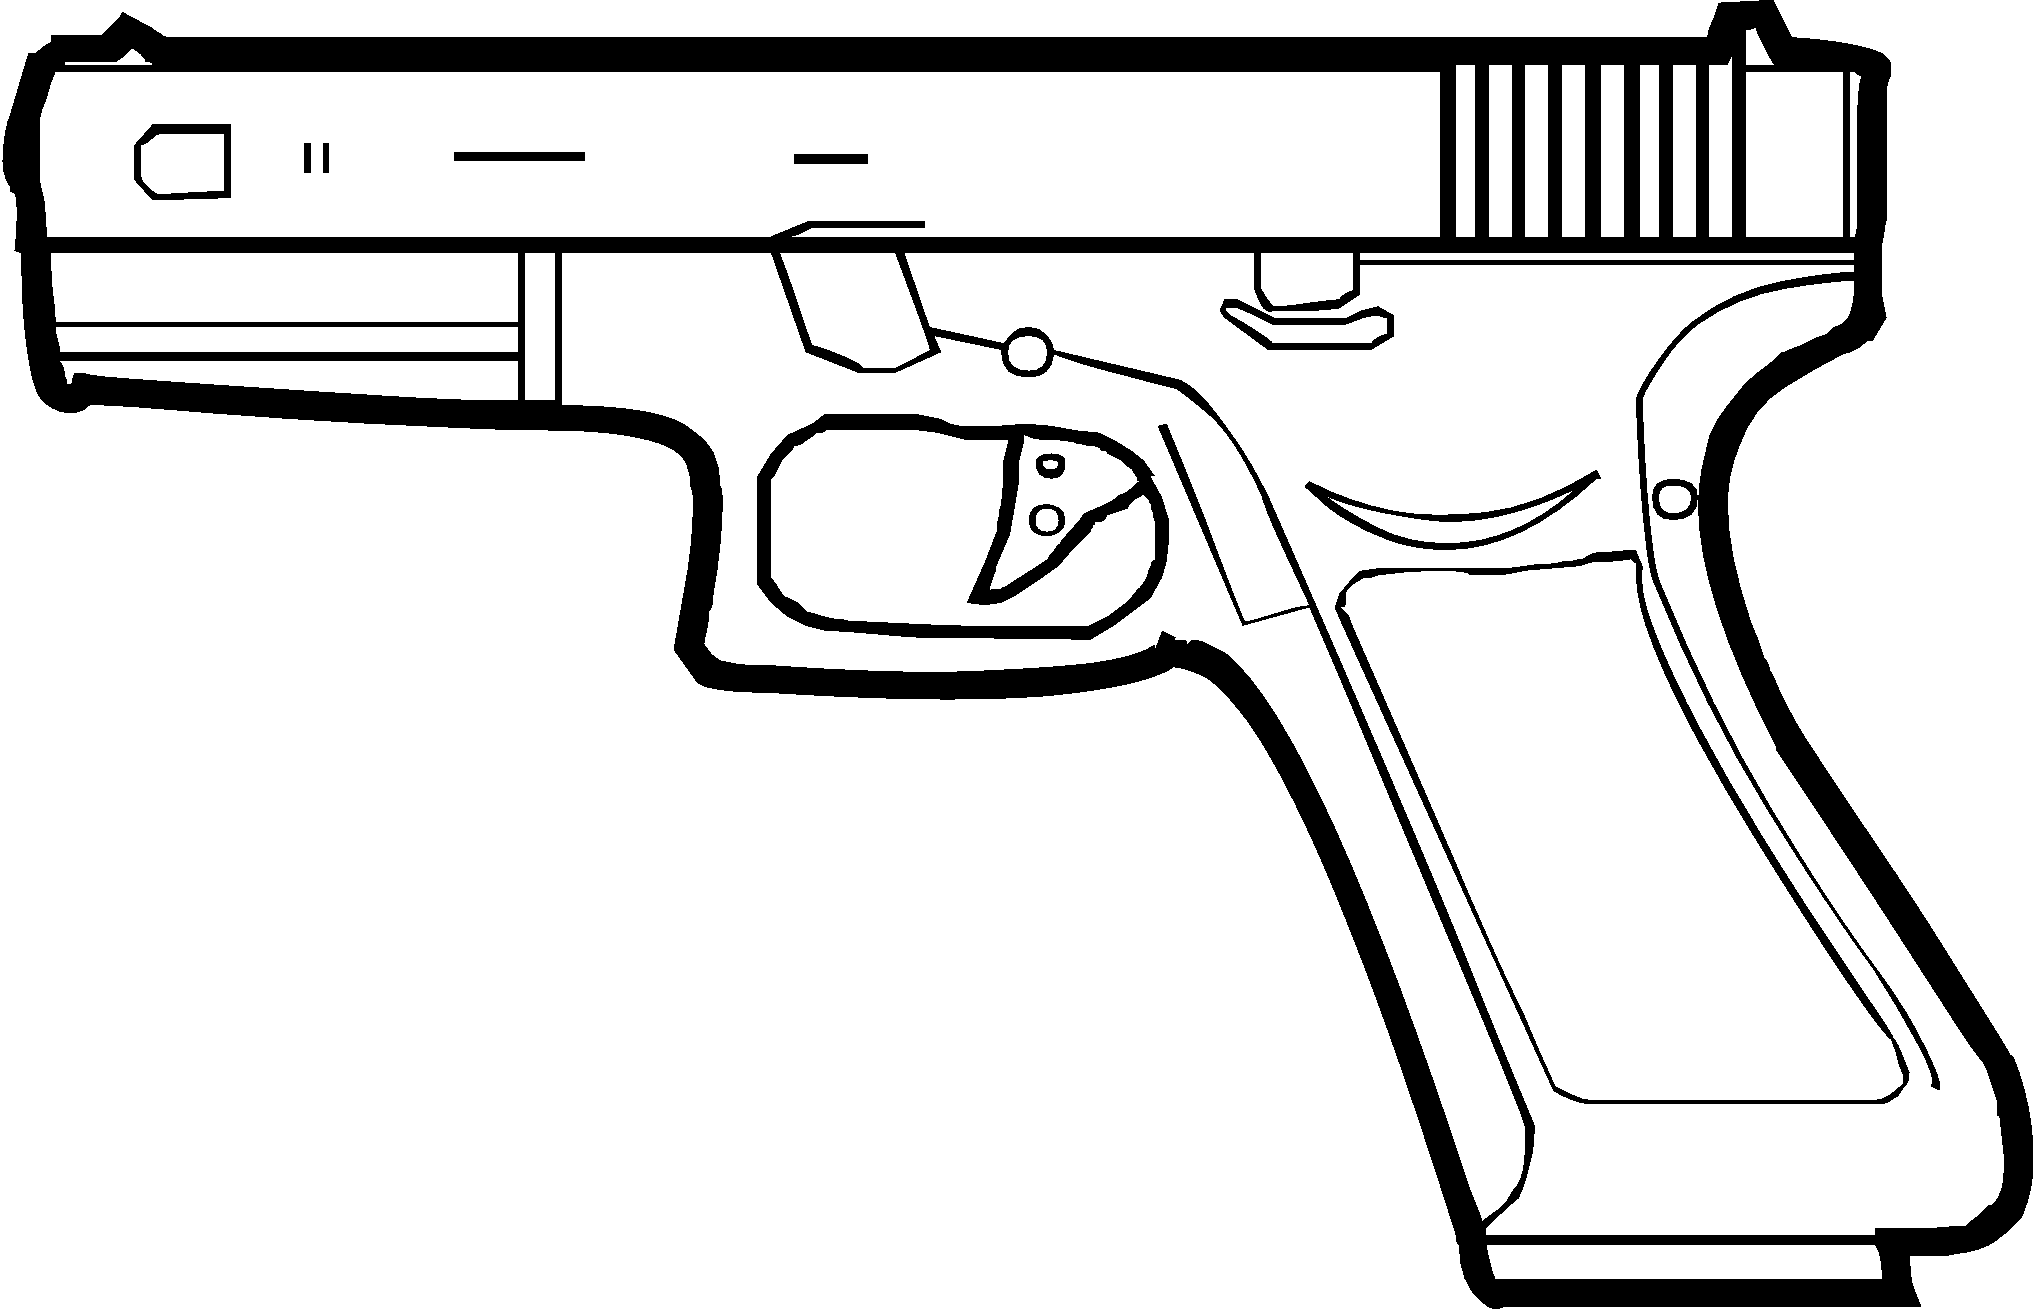 image drawing gun